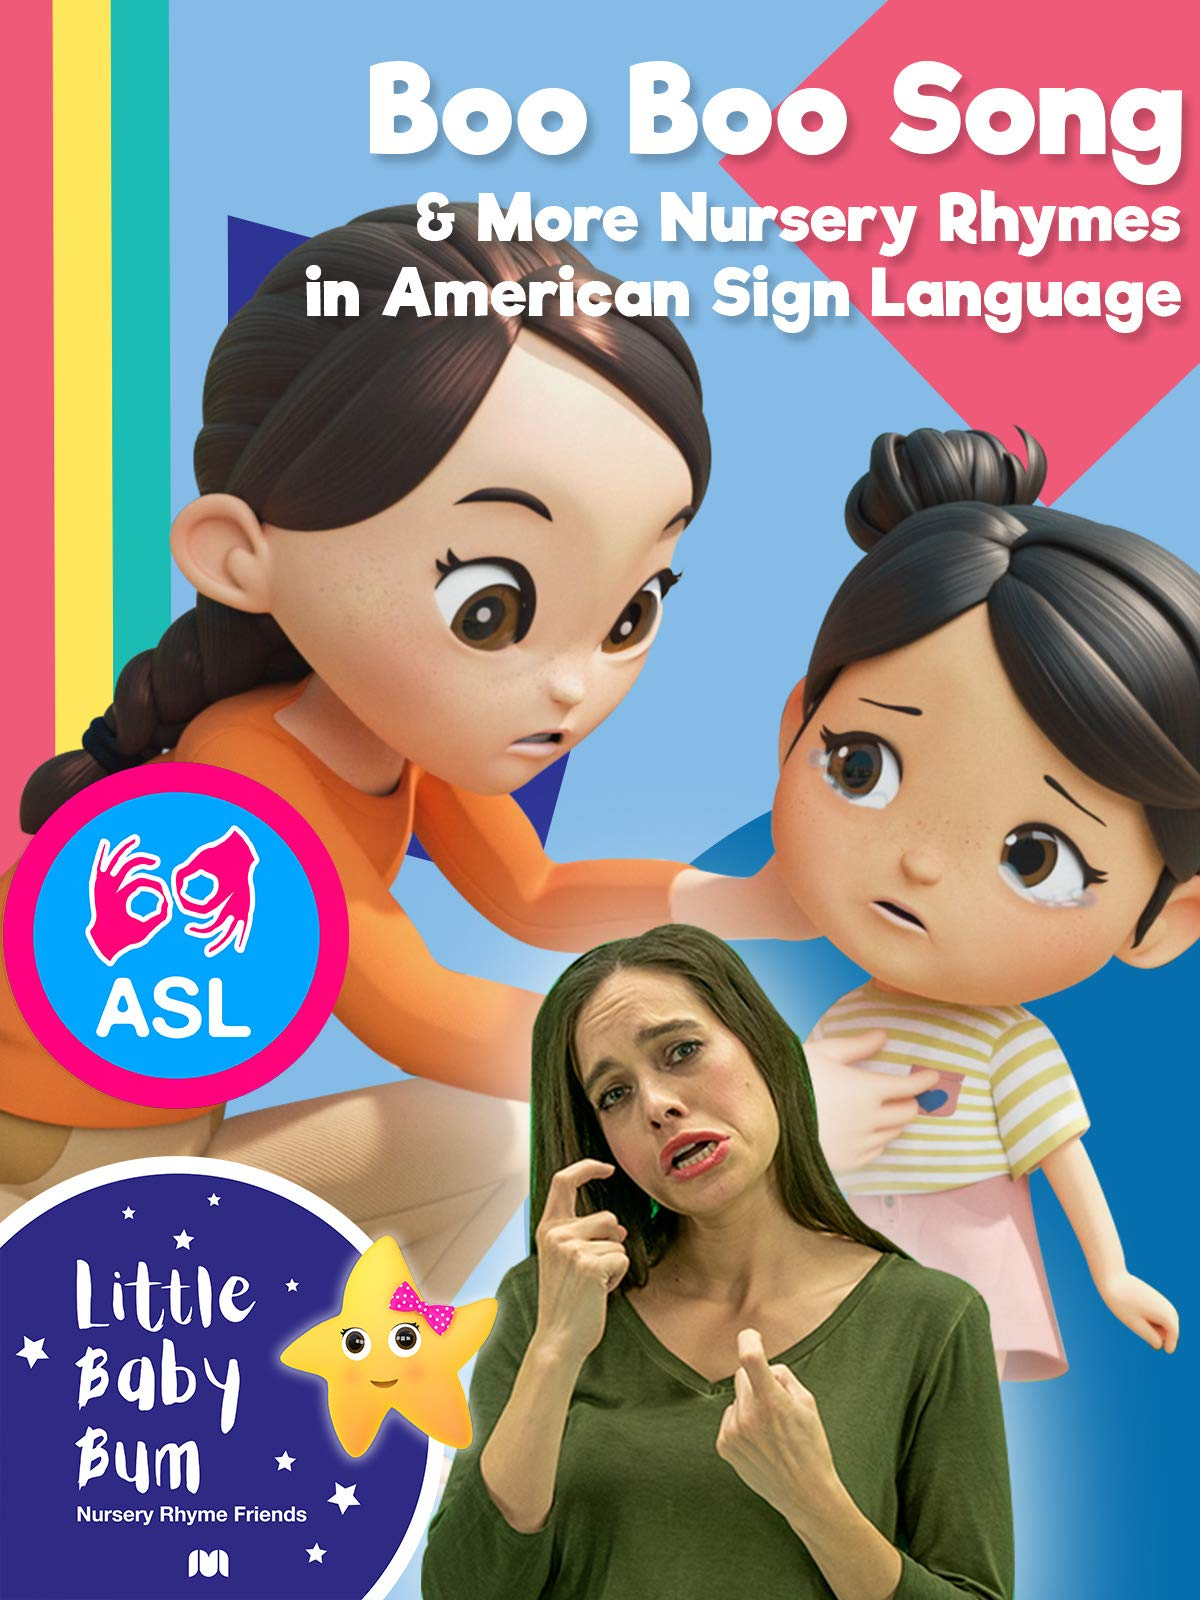 Little Baby Bum - Boo Boo Song & More Nursery Rhymes in Sign Language